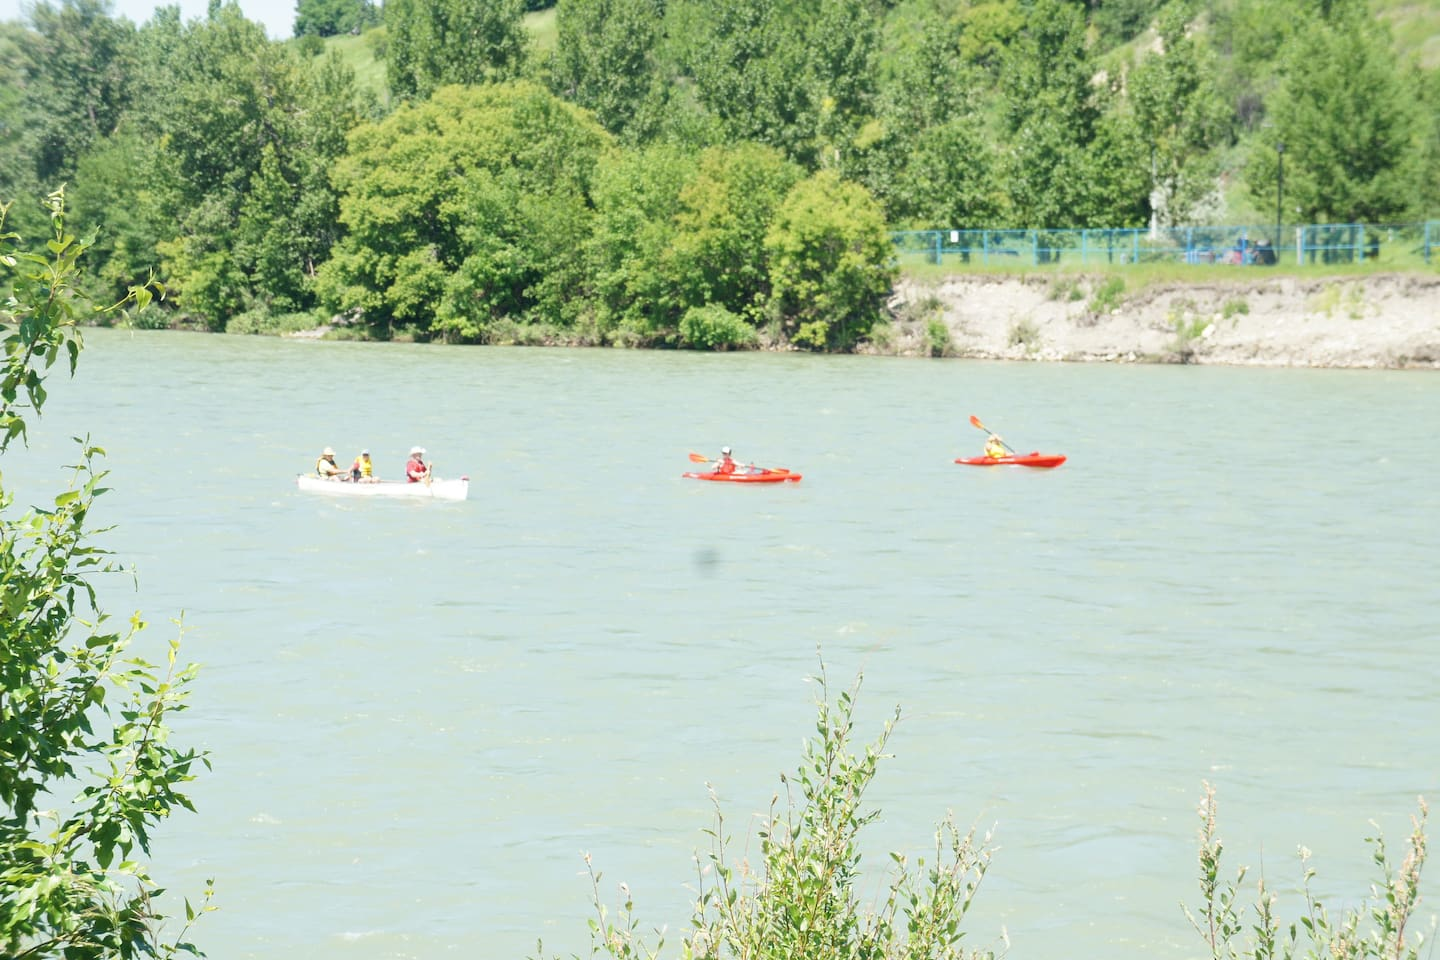 summer time, a lot of fun activities in the river